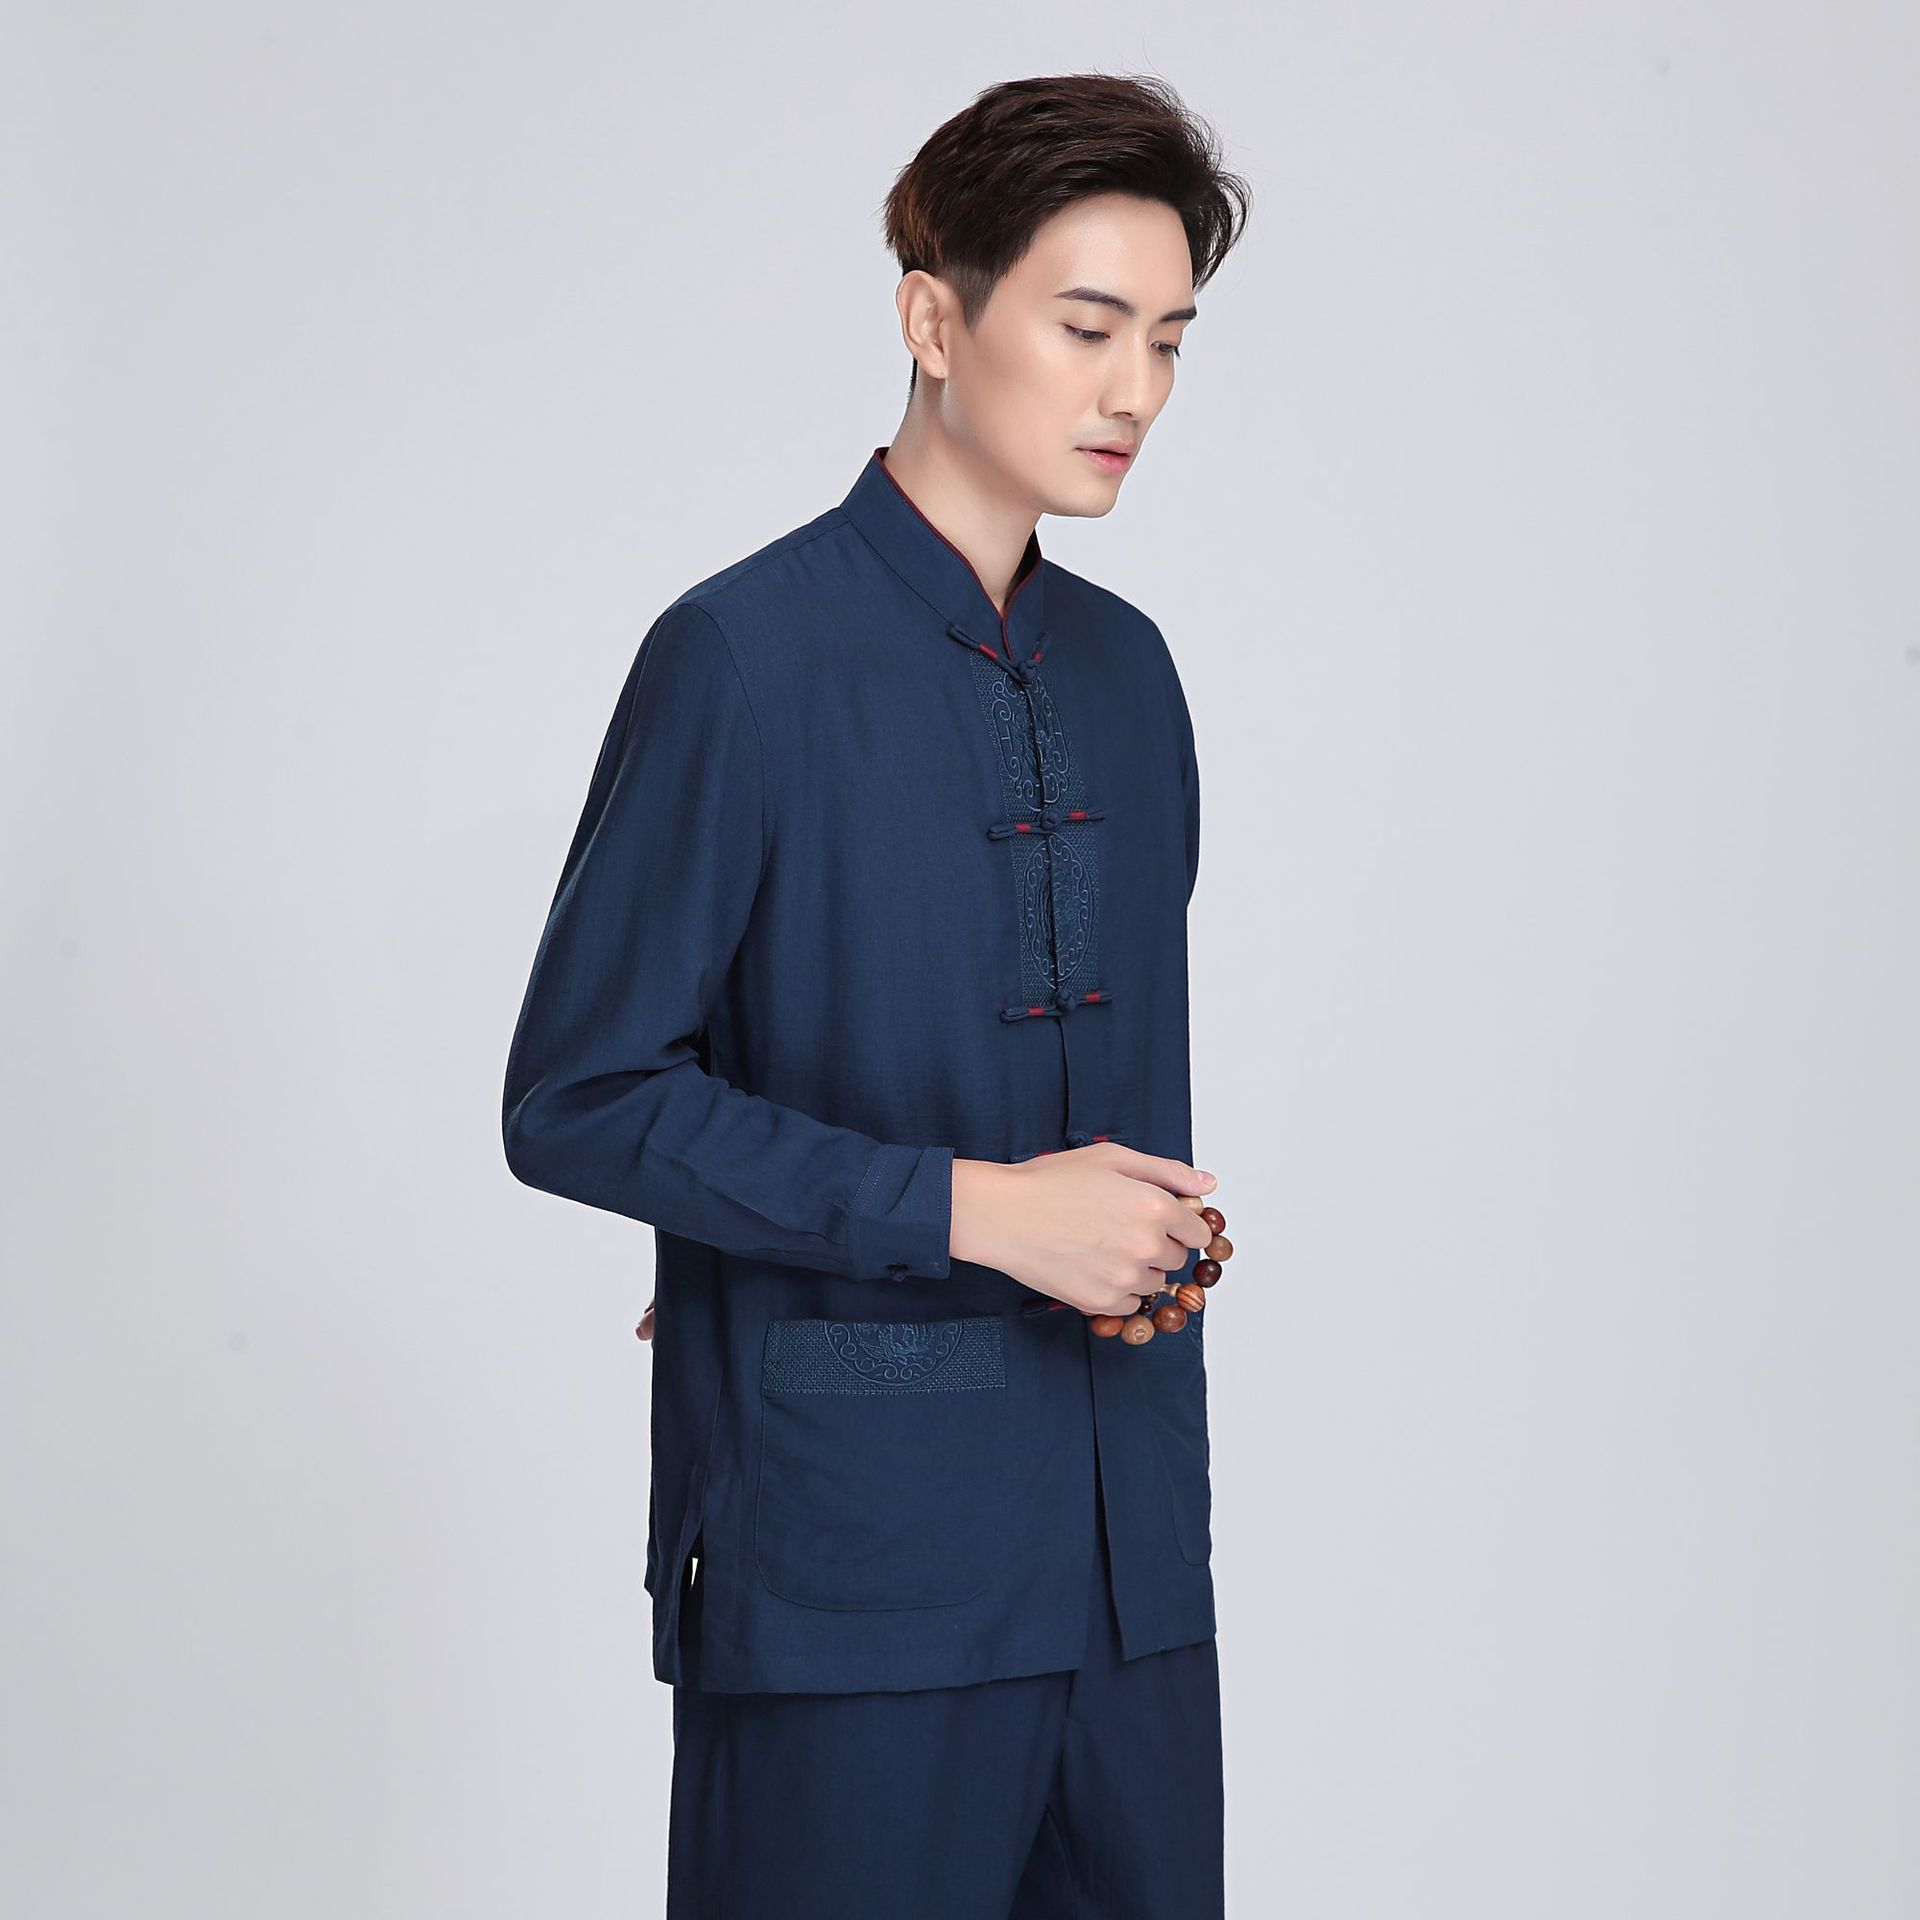 Chinese-style Chinese Style Flax 2814-1 Chinese Costume MEN'S Long Sleeve Top Middle-aged Long-sleeved Shirt/Set